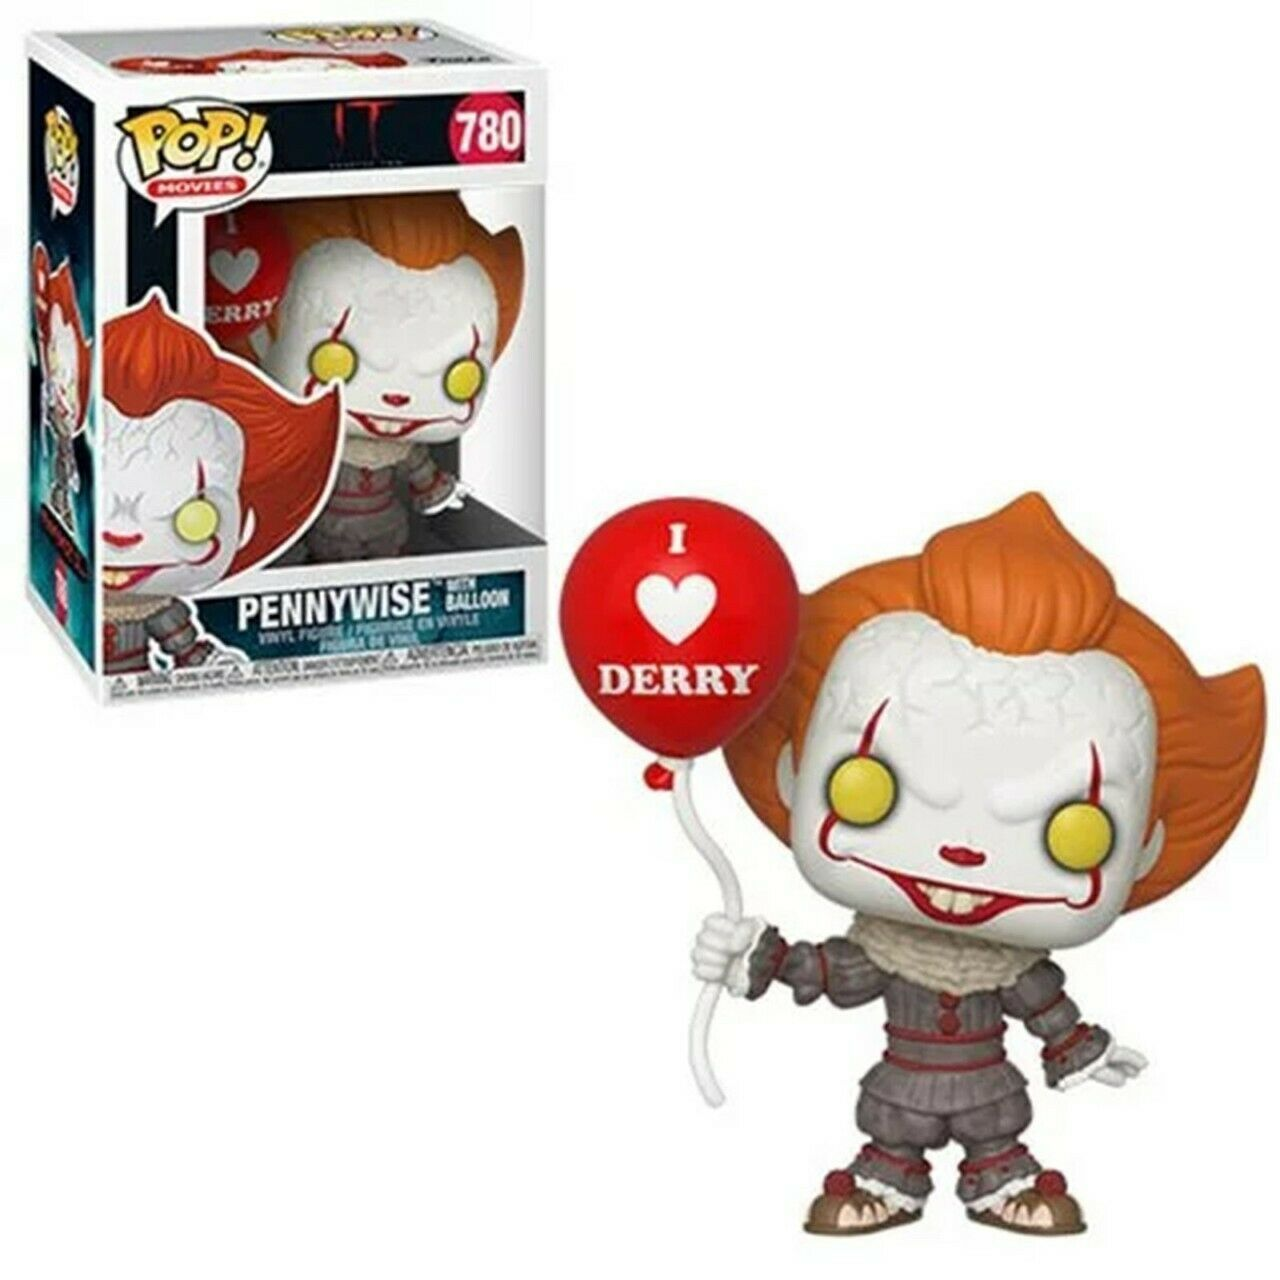 Funko Pop! - Pennywise With Balloon - It Chapter 2 - #780